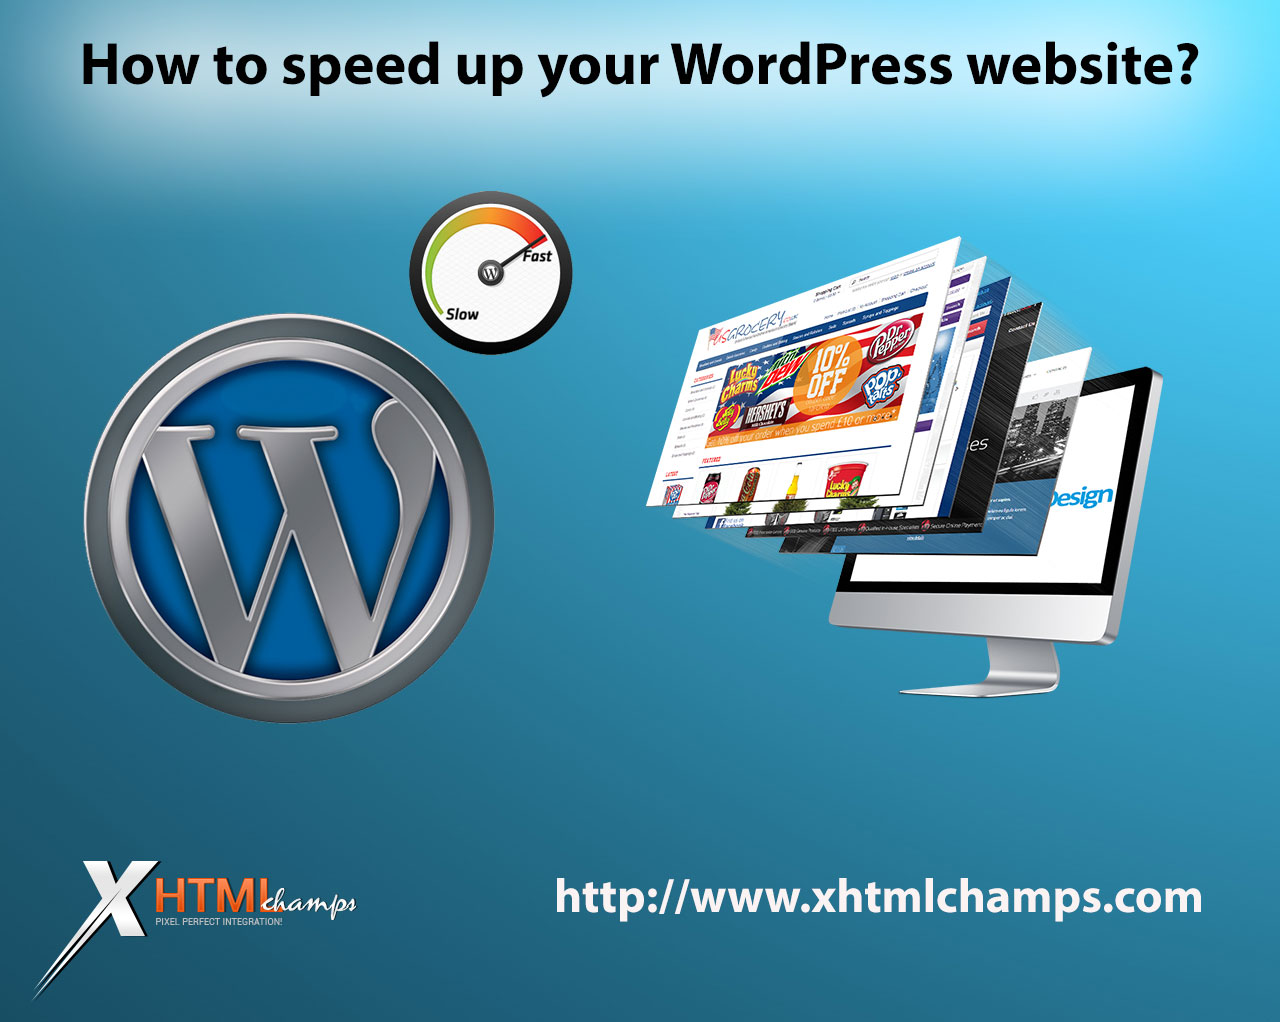 Optimize wordpress website for